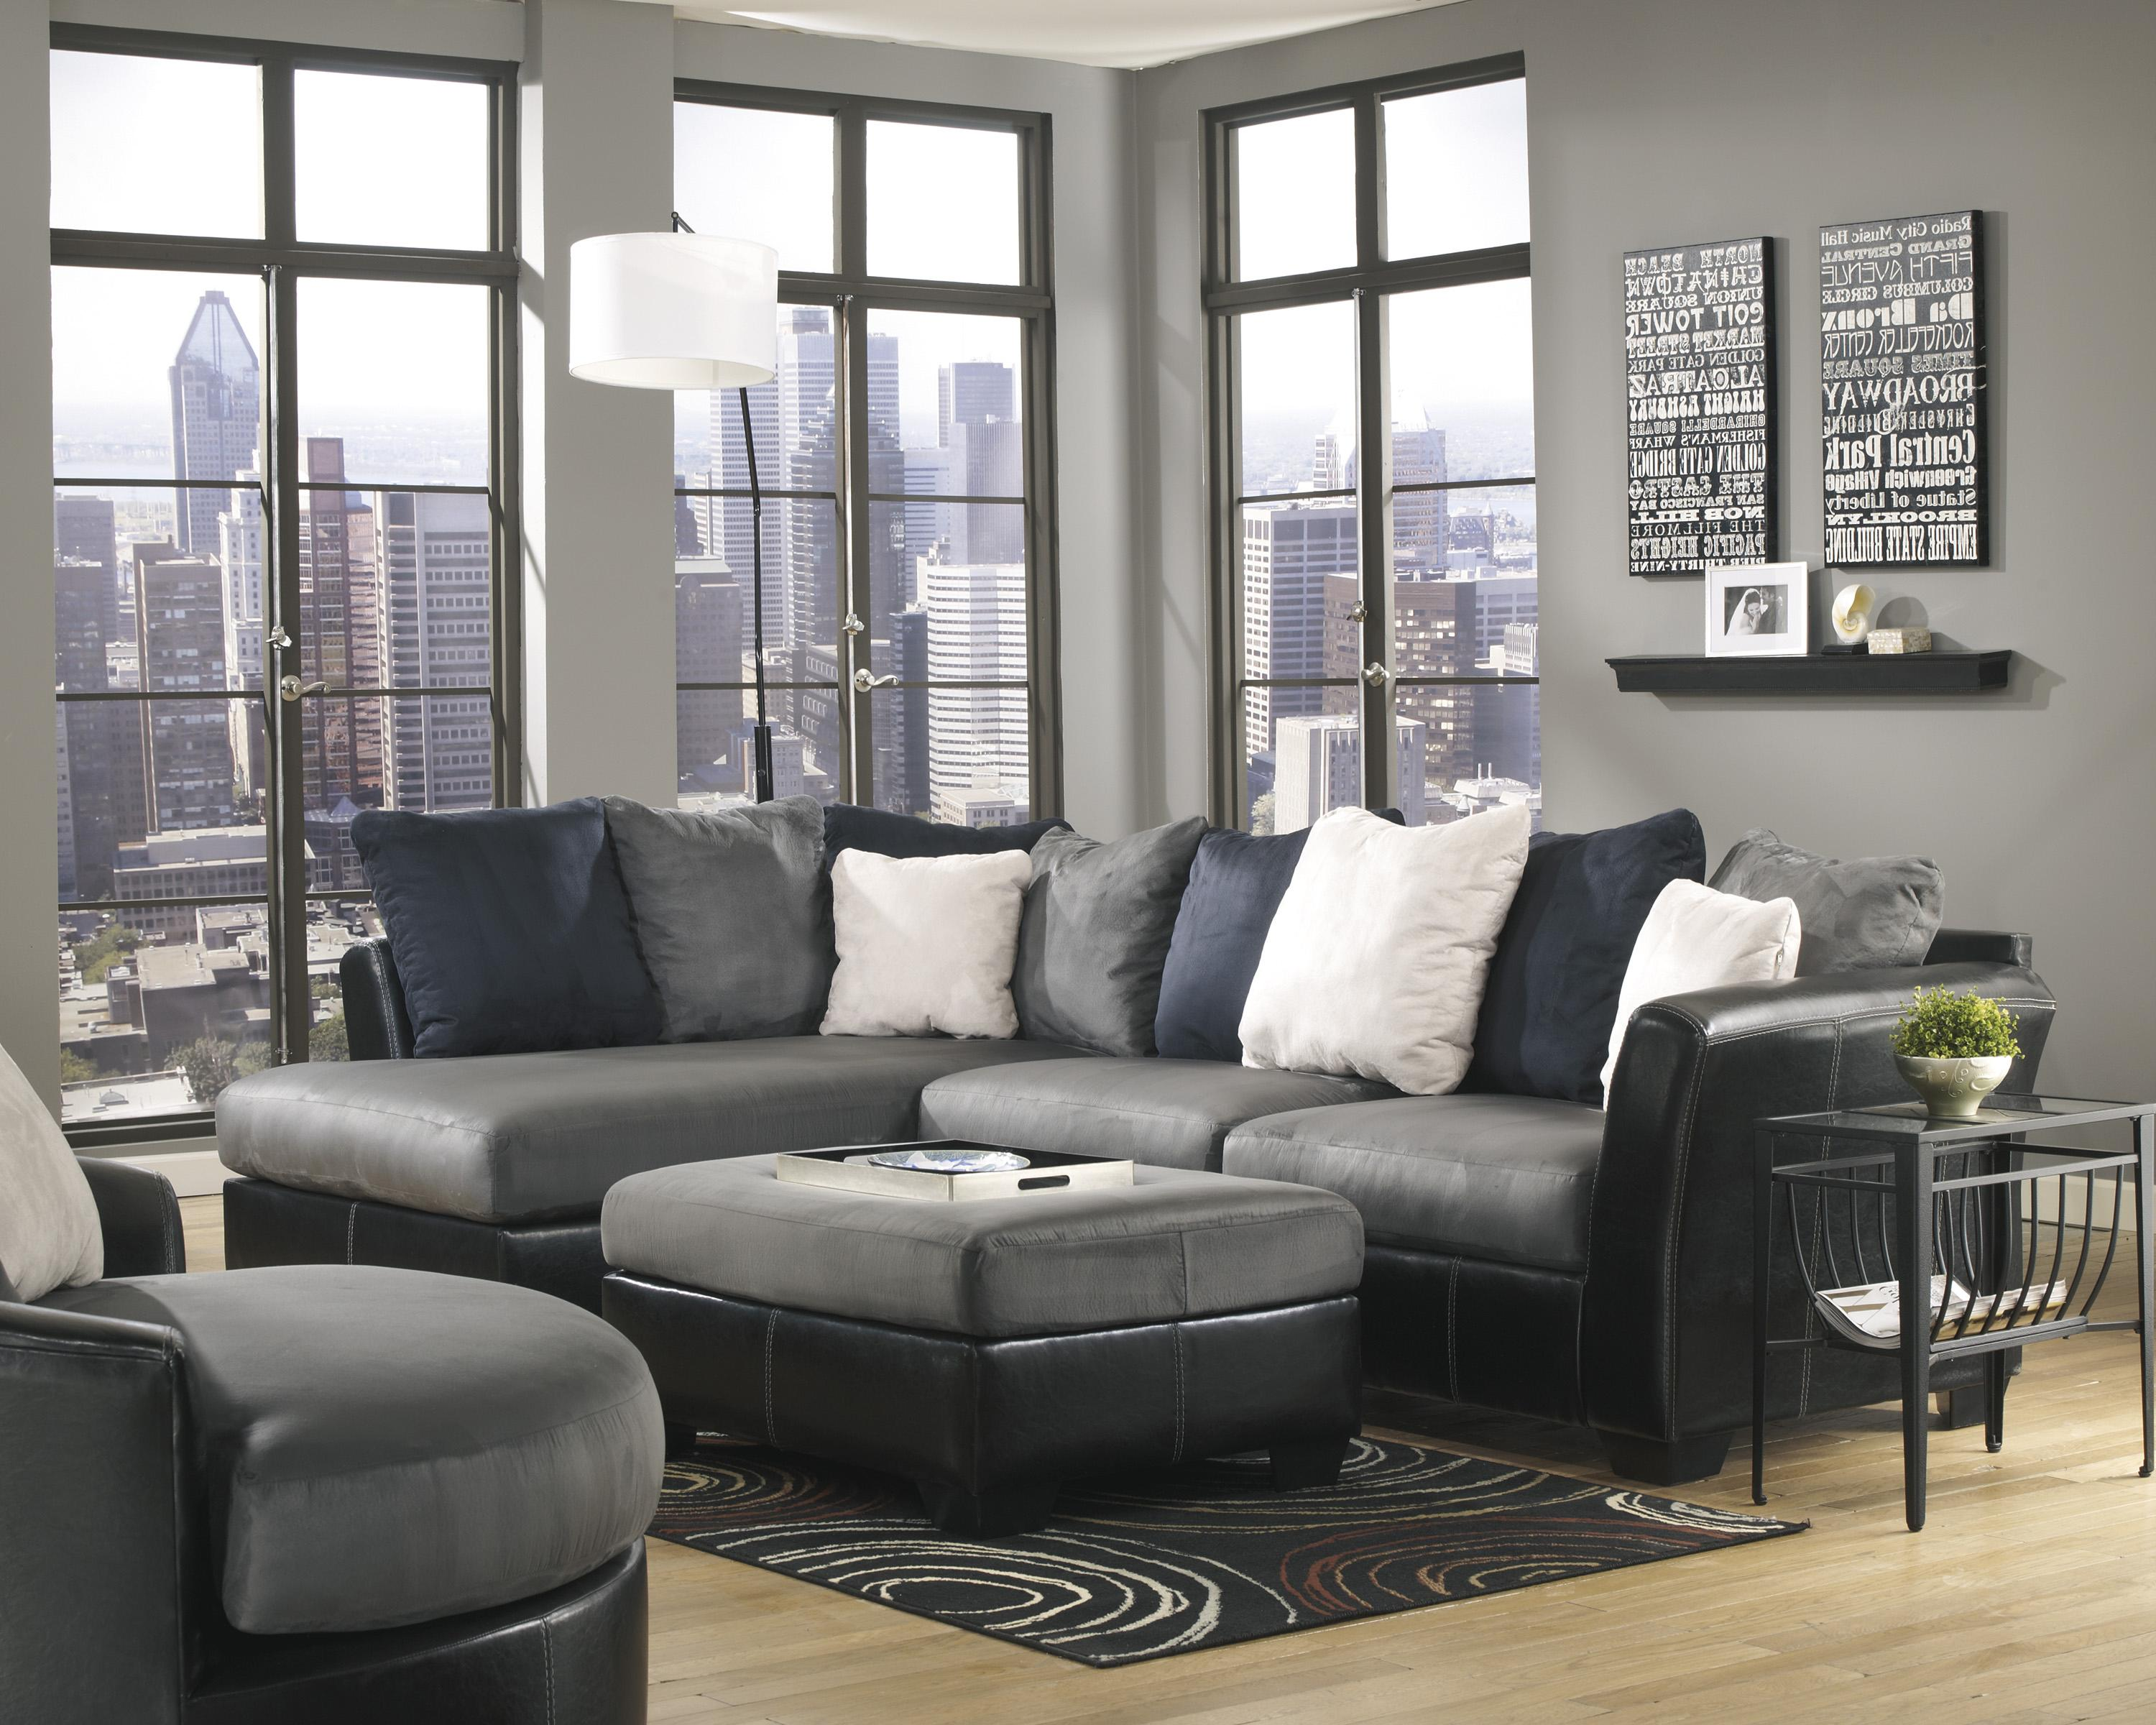 Ashley/Benchcraft Masoli - Cobblestone Stationary Living Room Group - Item Number: 14200 Living Room Group 8